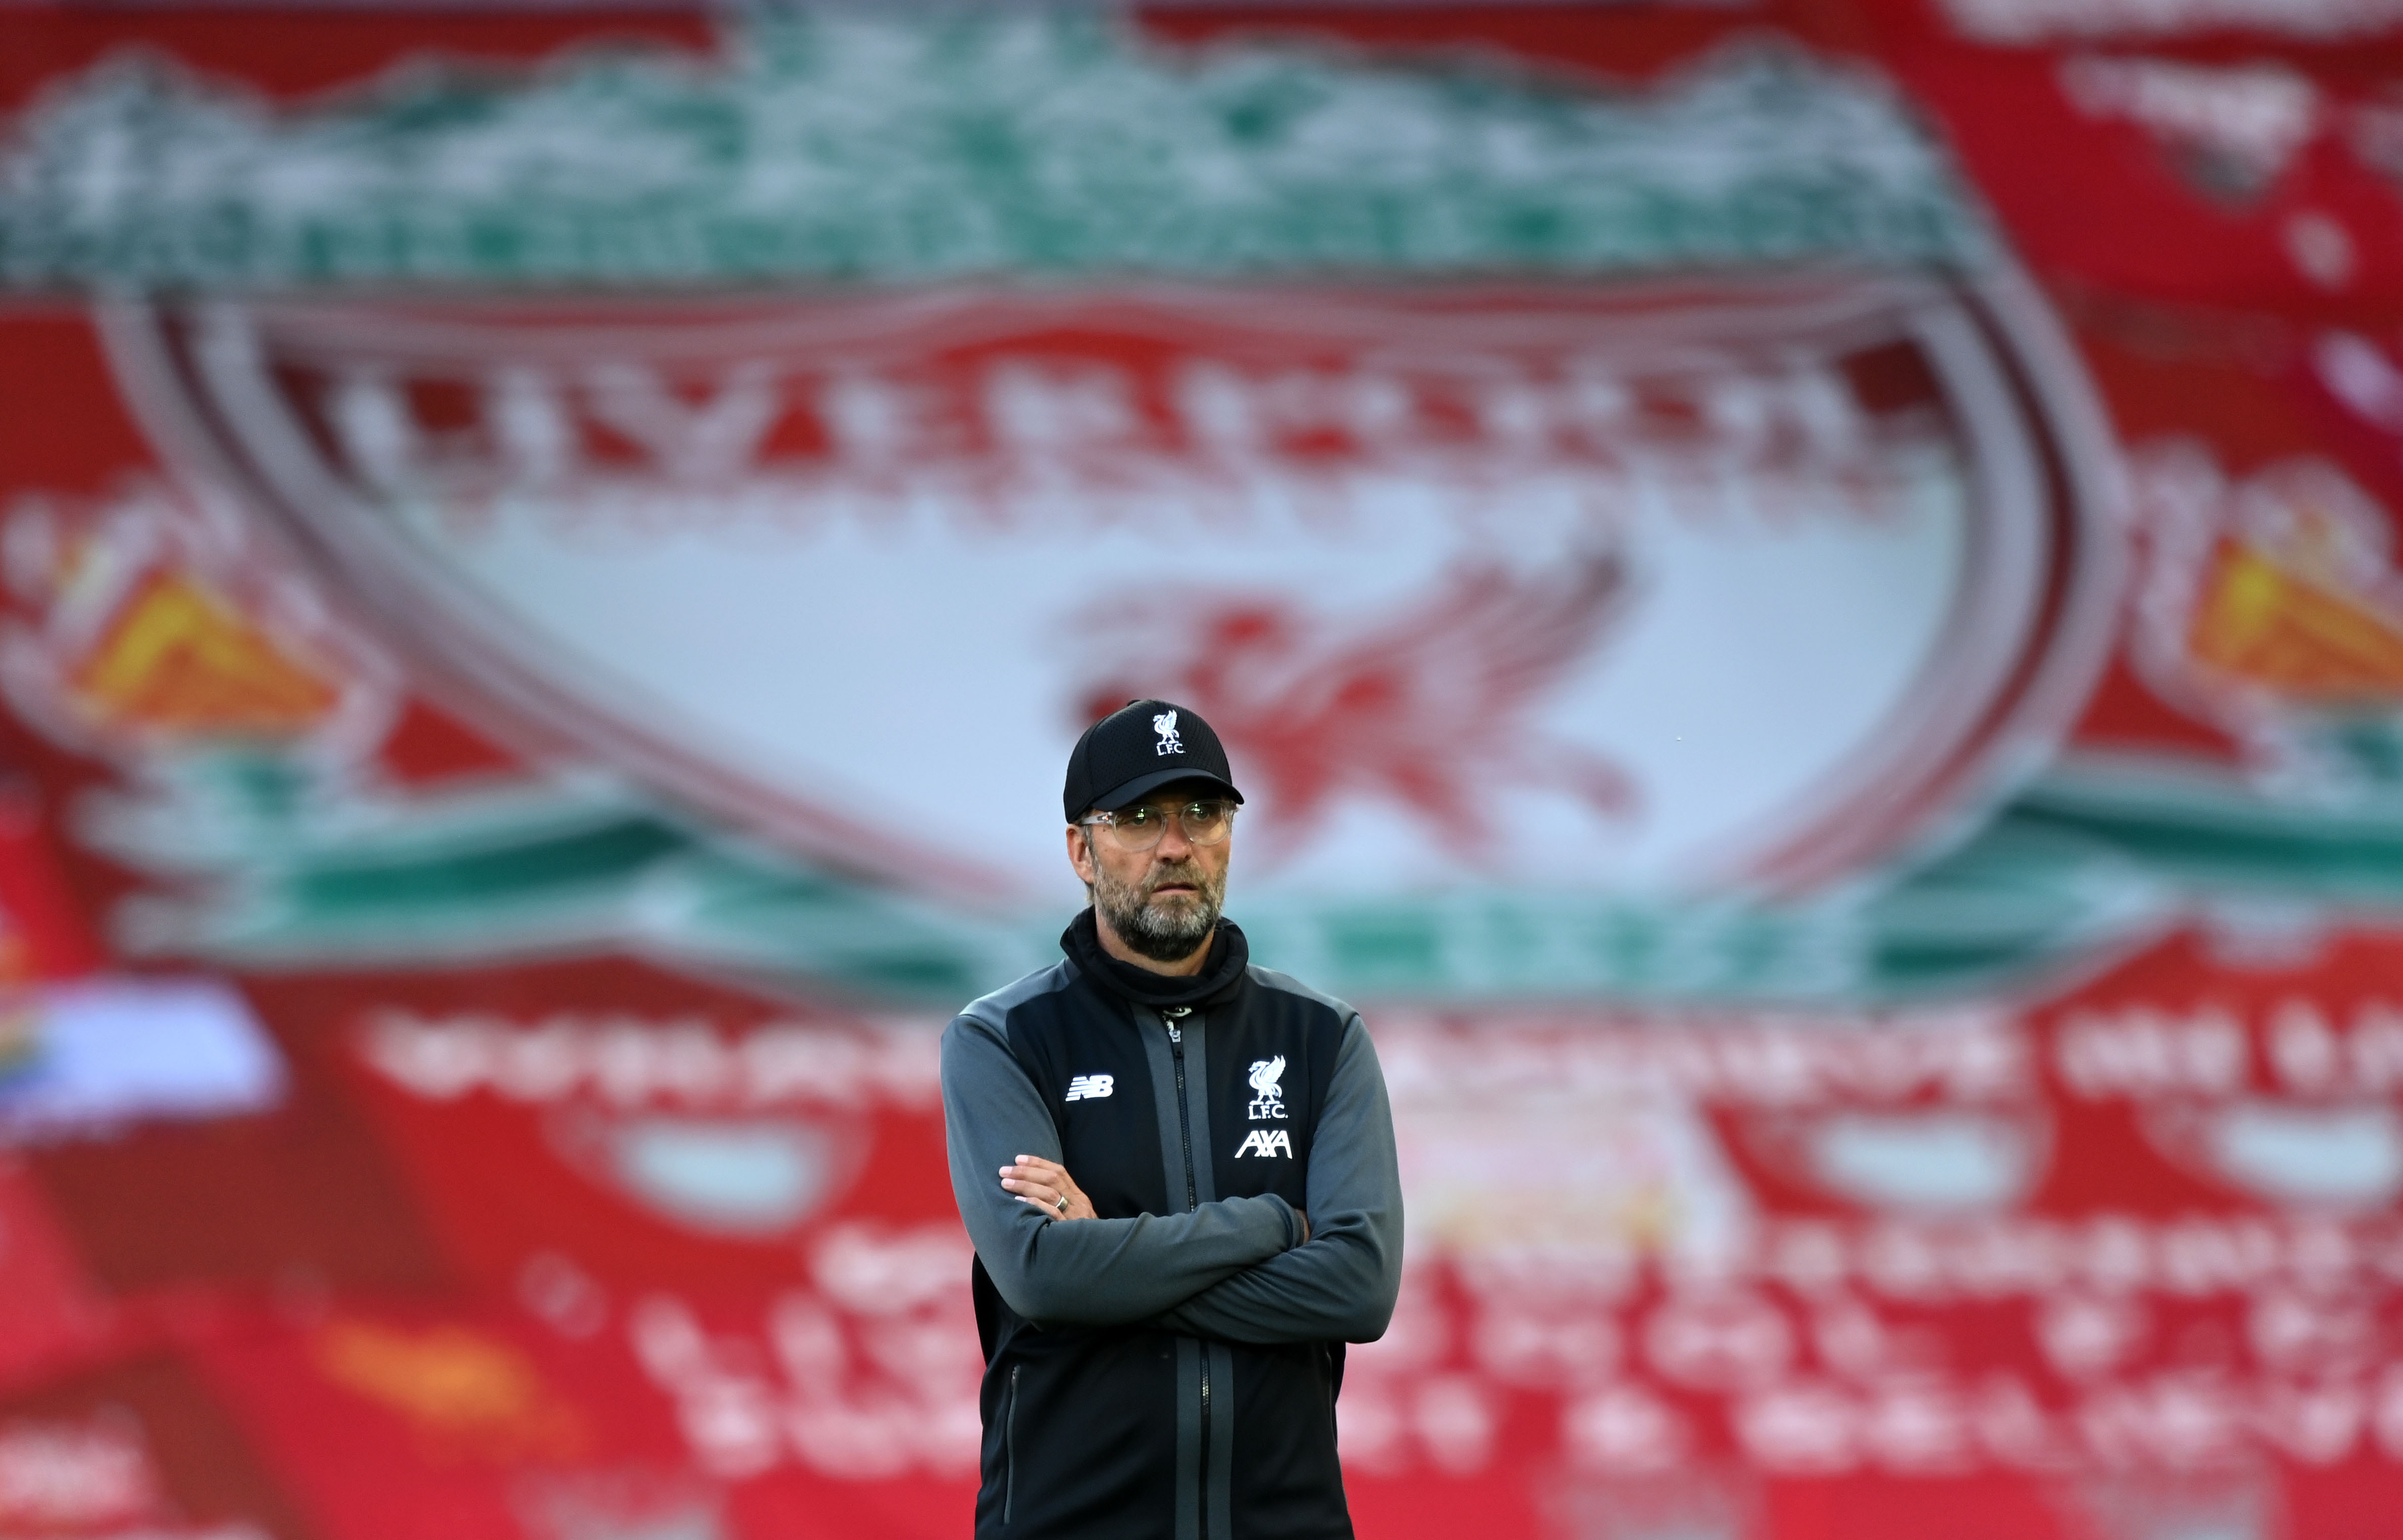 Liverpool Manager Jurgen Klopp looks on prior to a Premier League match at Anfield stadium in England on June 24.